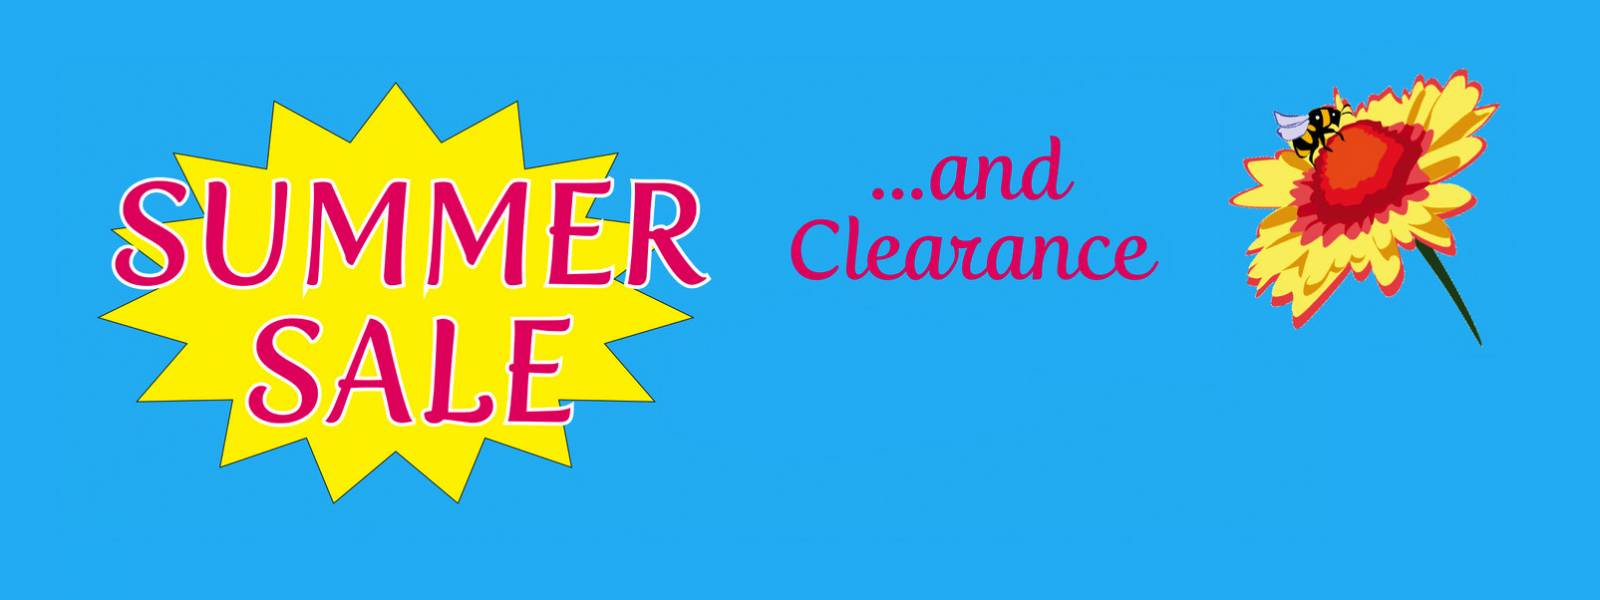 Summer Sale and Clearance…